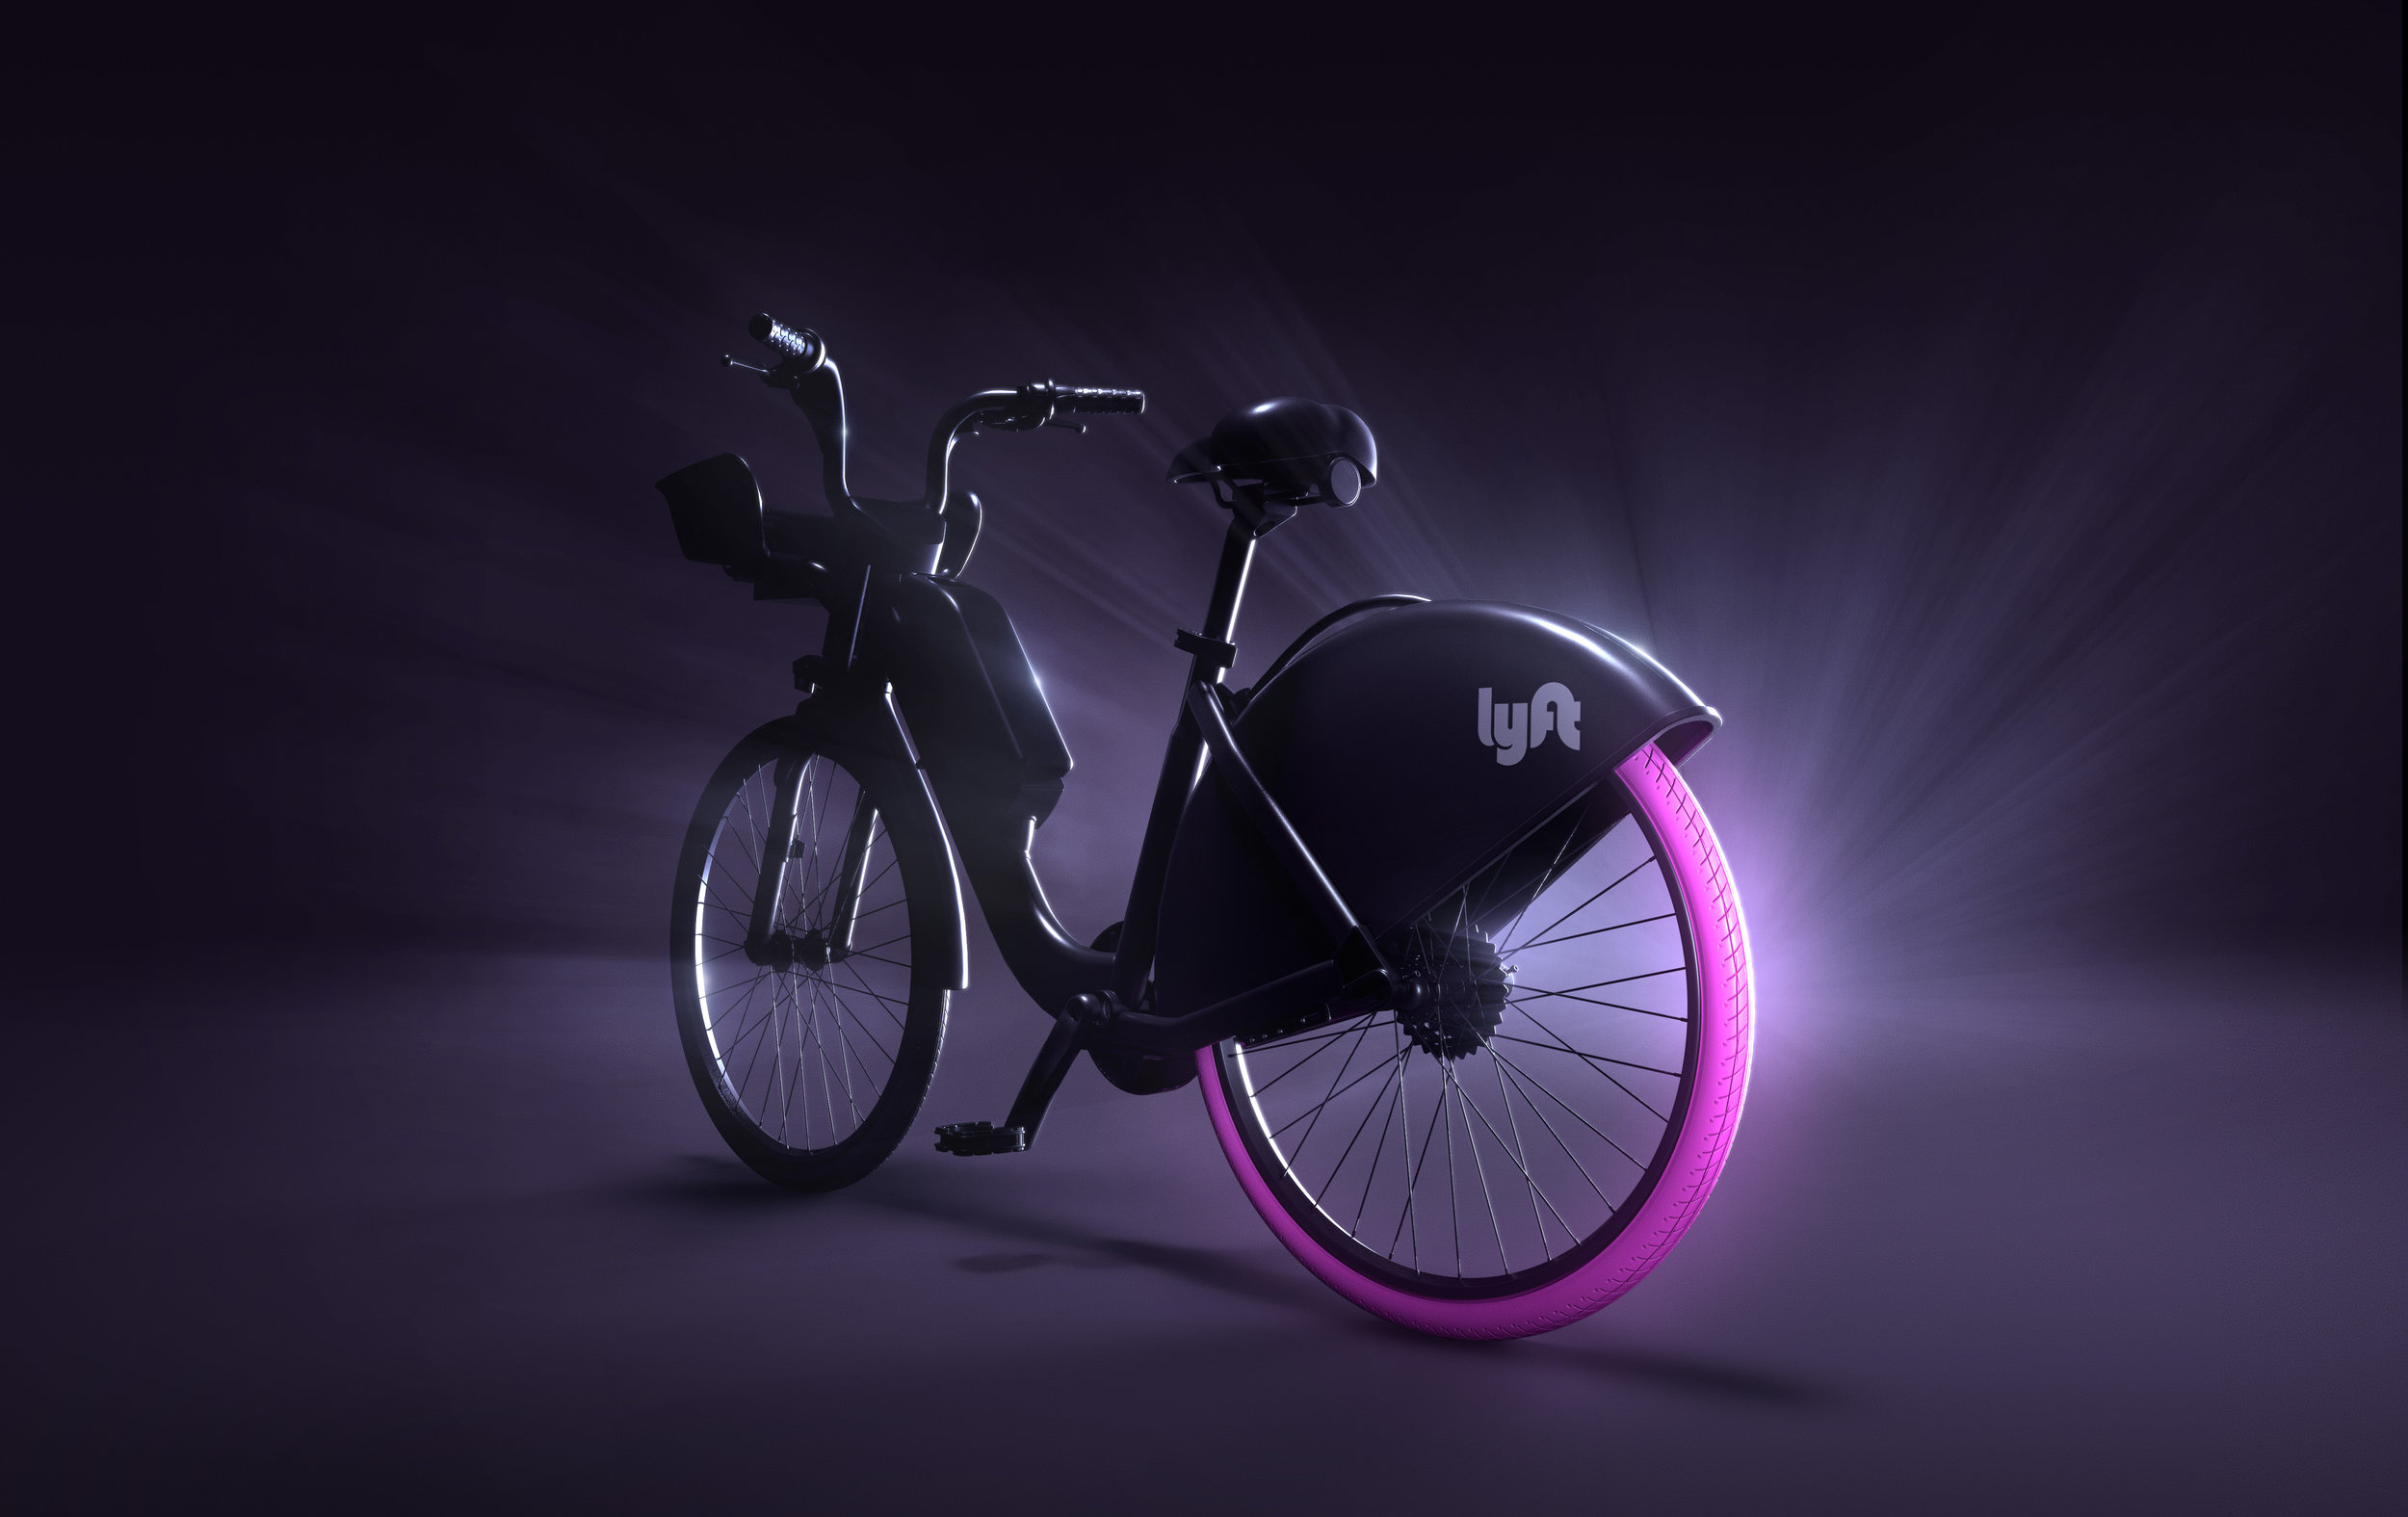 A preview of Lyft's branded bikes